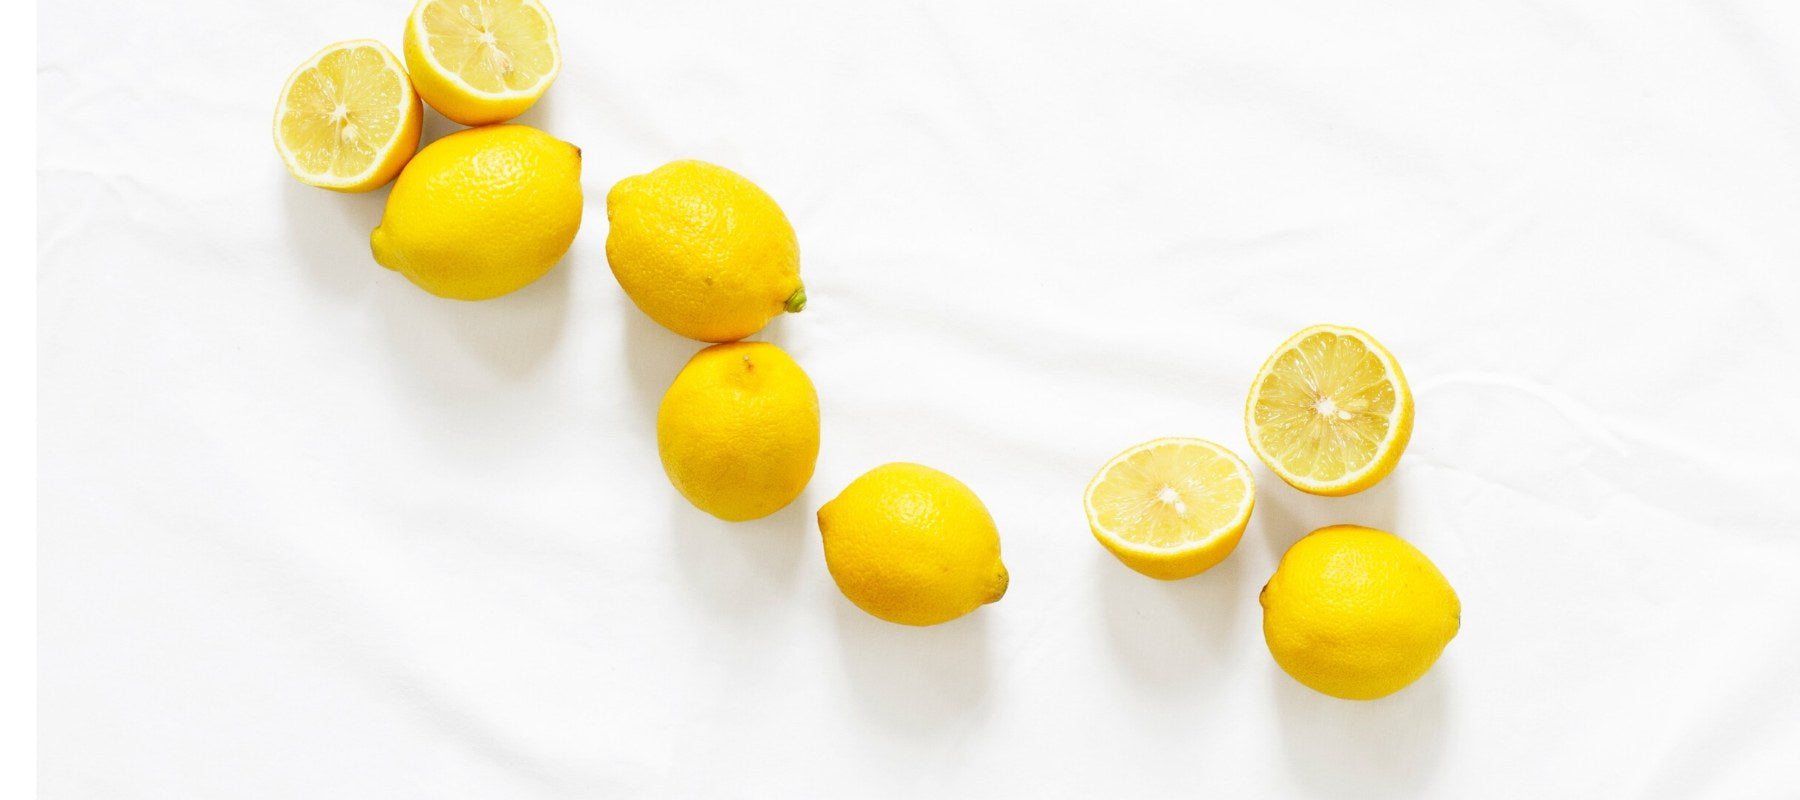 Group of lemons on a marble top